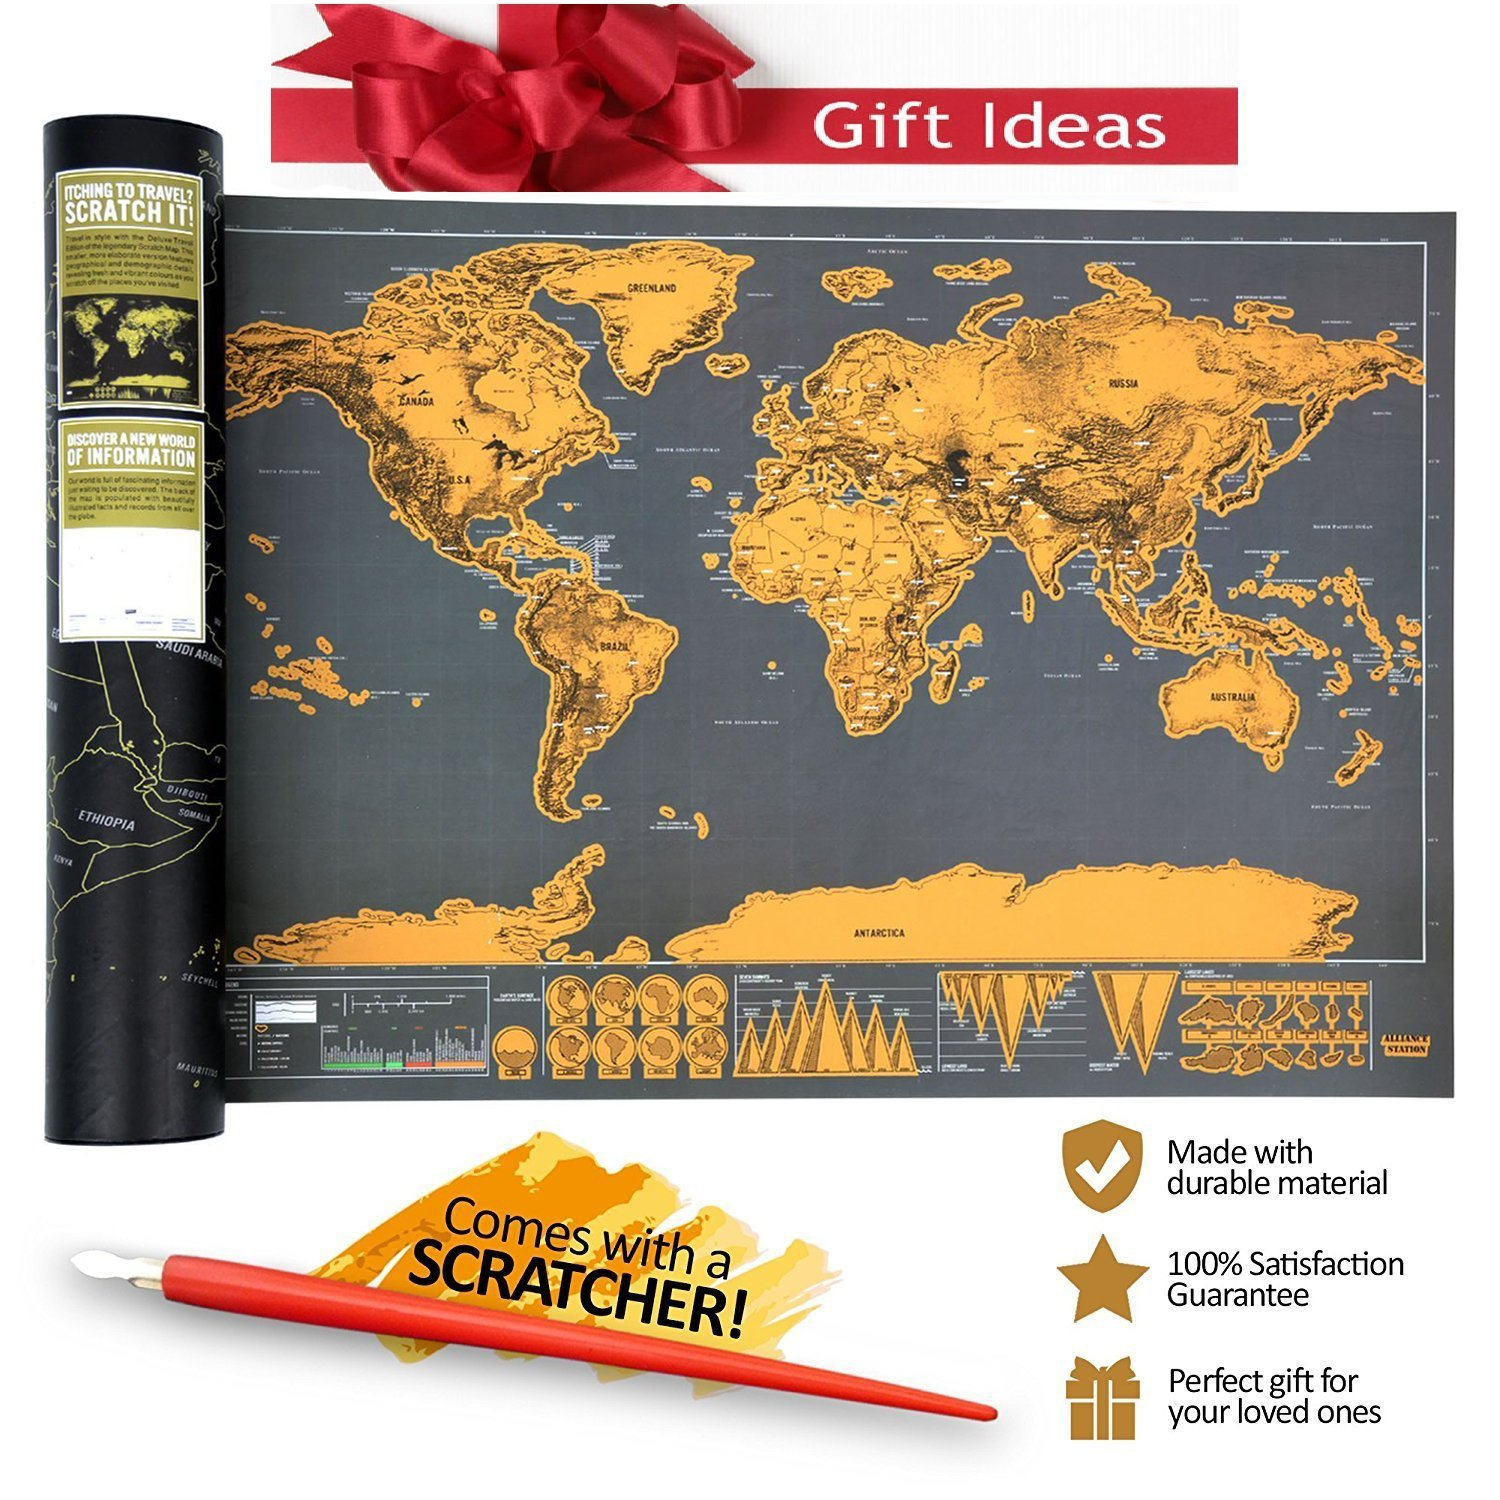 Scratch Off World Map Poster- Mini Black & Gold Brown Travel Tracker Deluxe Edition Traveler Gift Set B1210-1